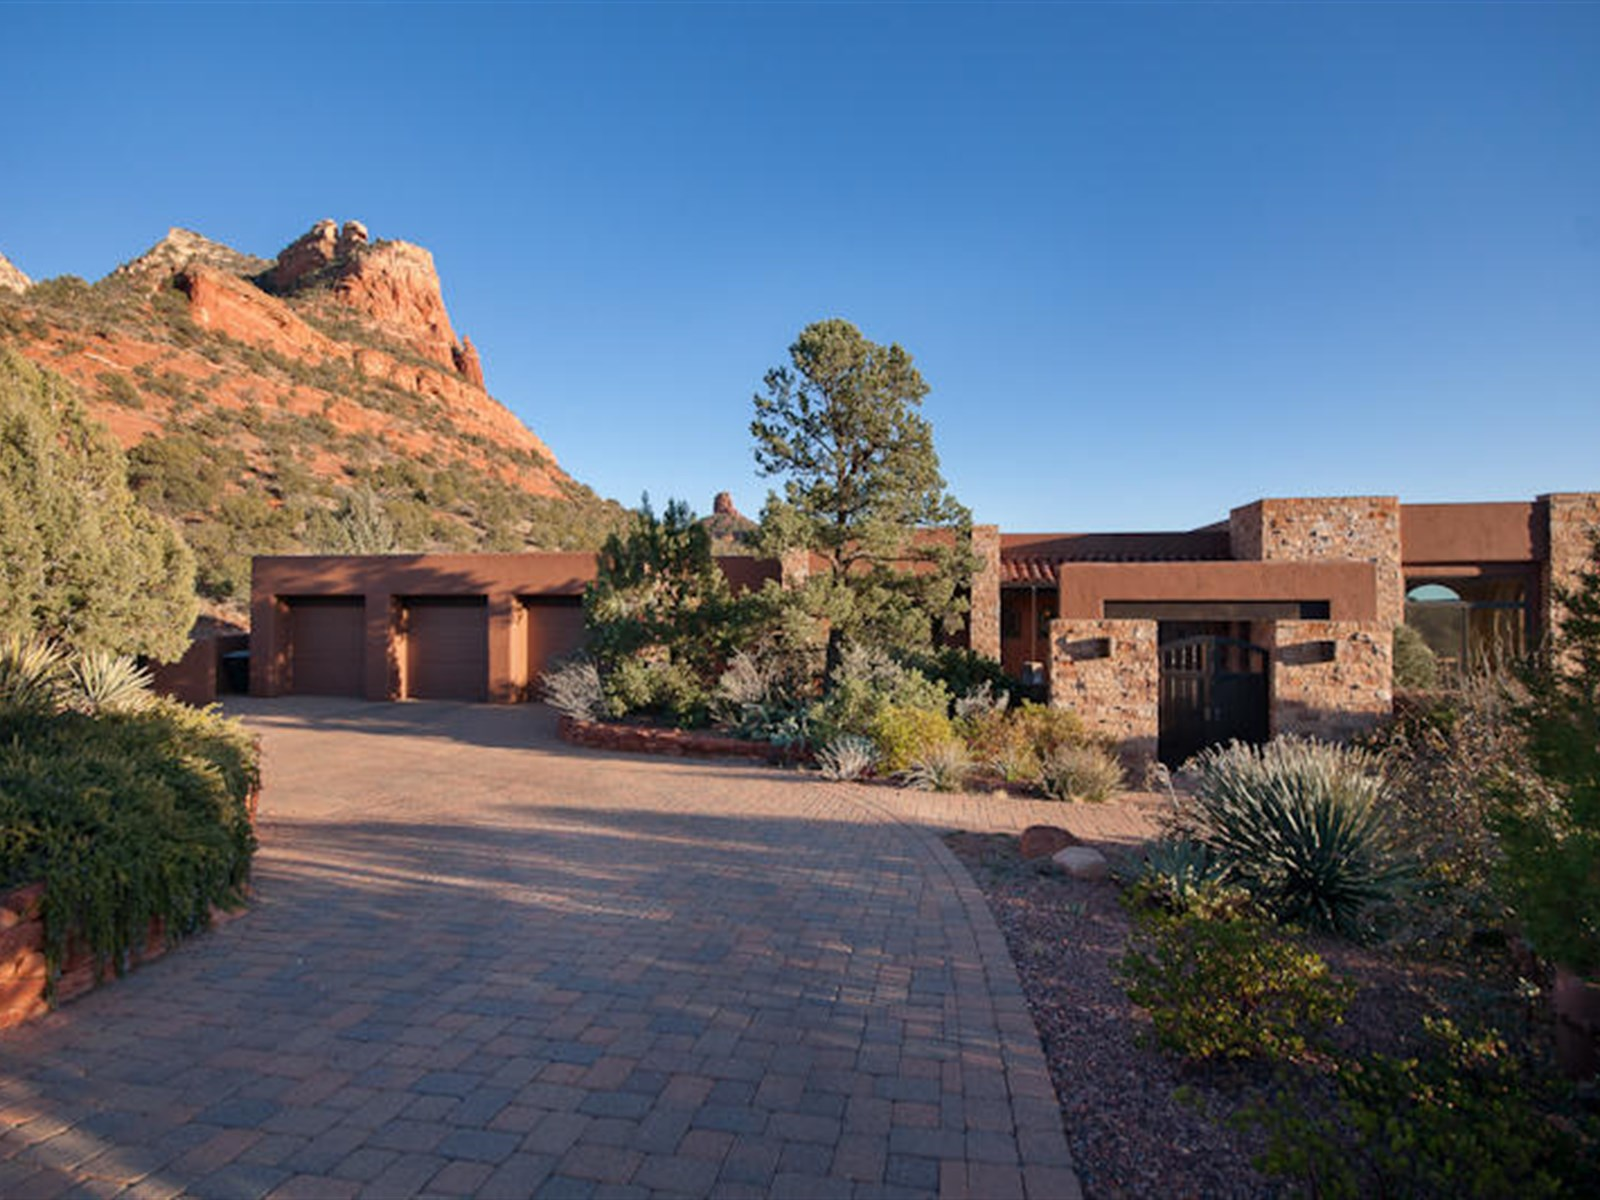 Villa per Vendita alle ore Exquisite & Private Contemporary Southwest Home 20 Garnet Hill Drive Sedona, Arizona, 86336 Stati Uniti